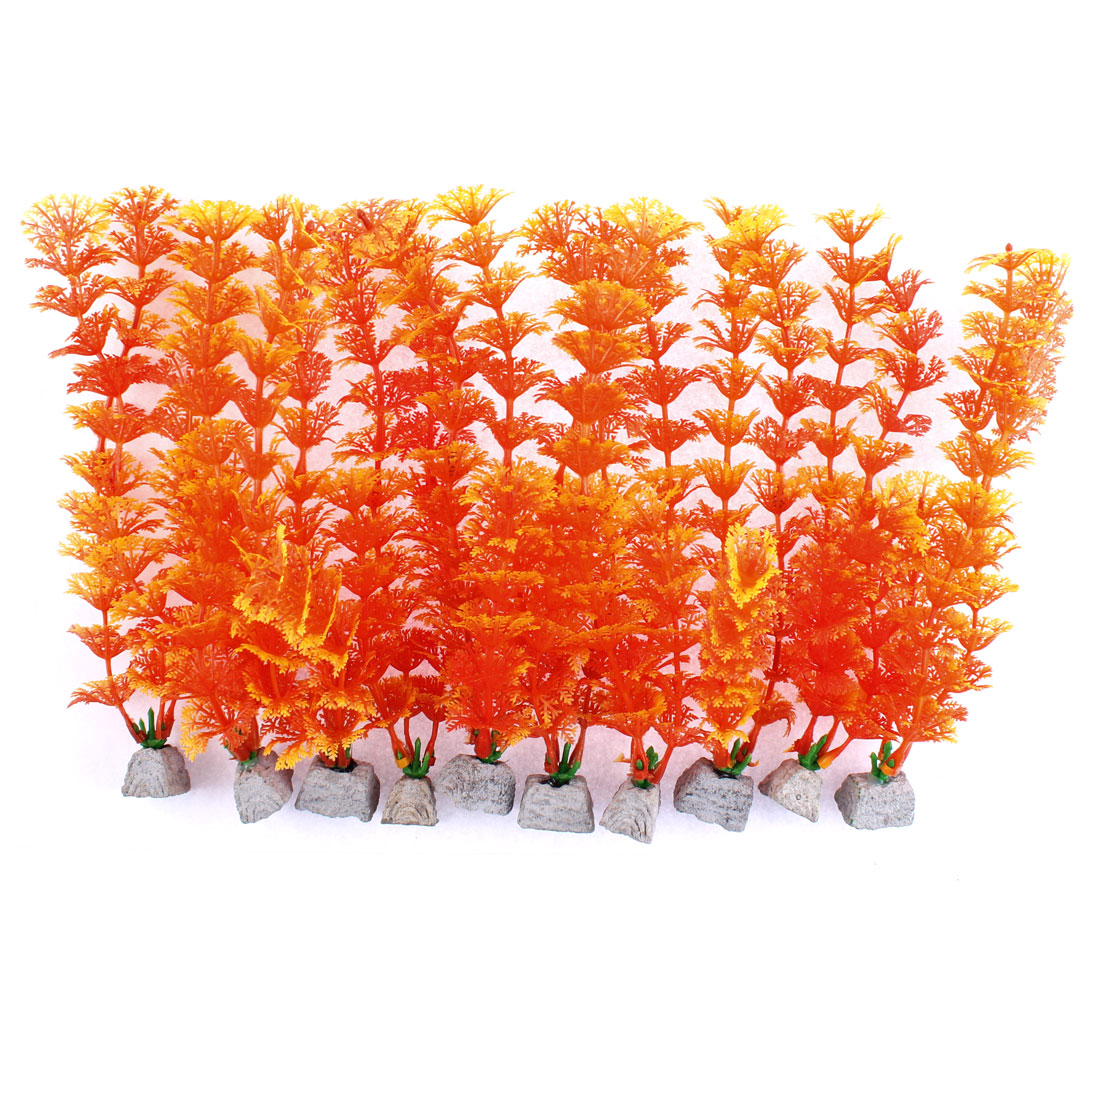 Aquarium Plastic Emulational Water Plant Grass Landscaping Orange 10 pcs